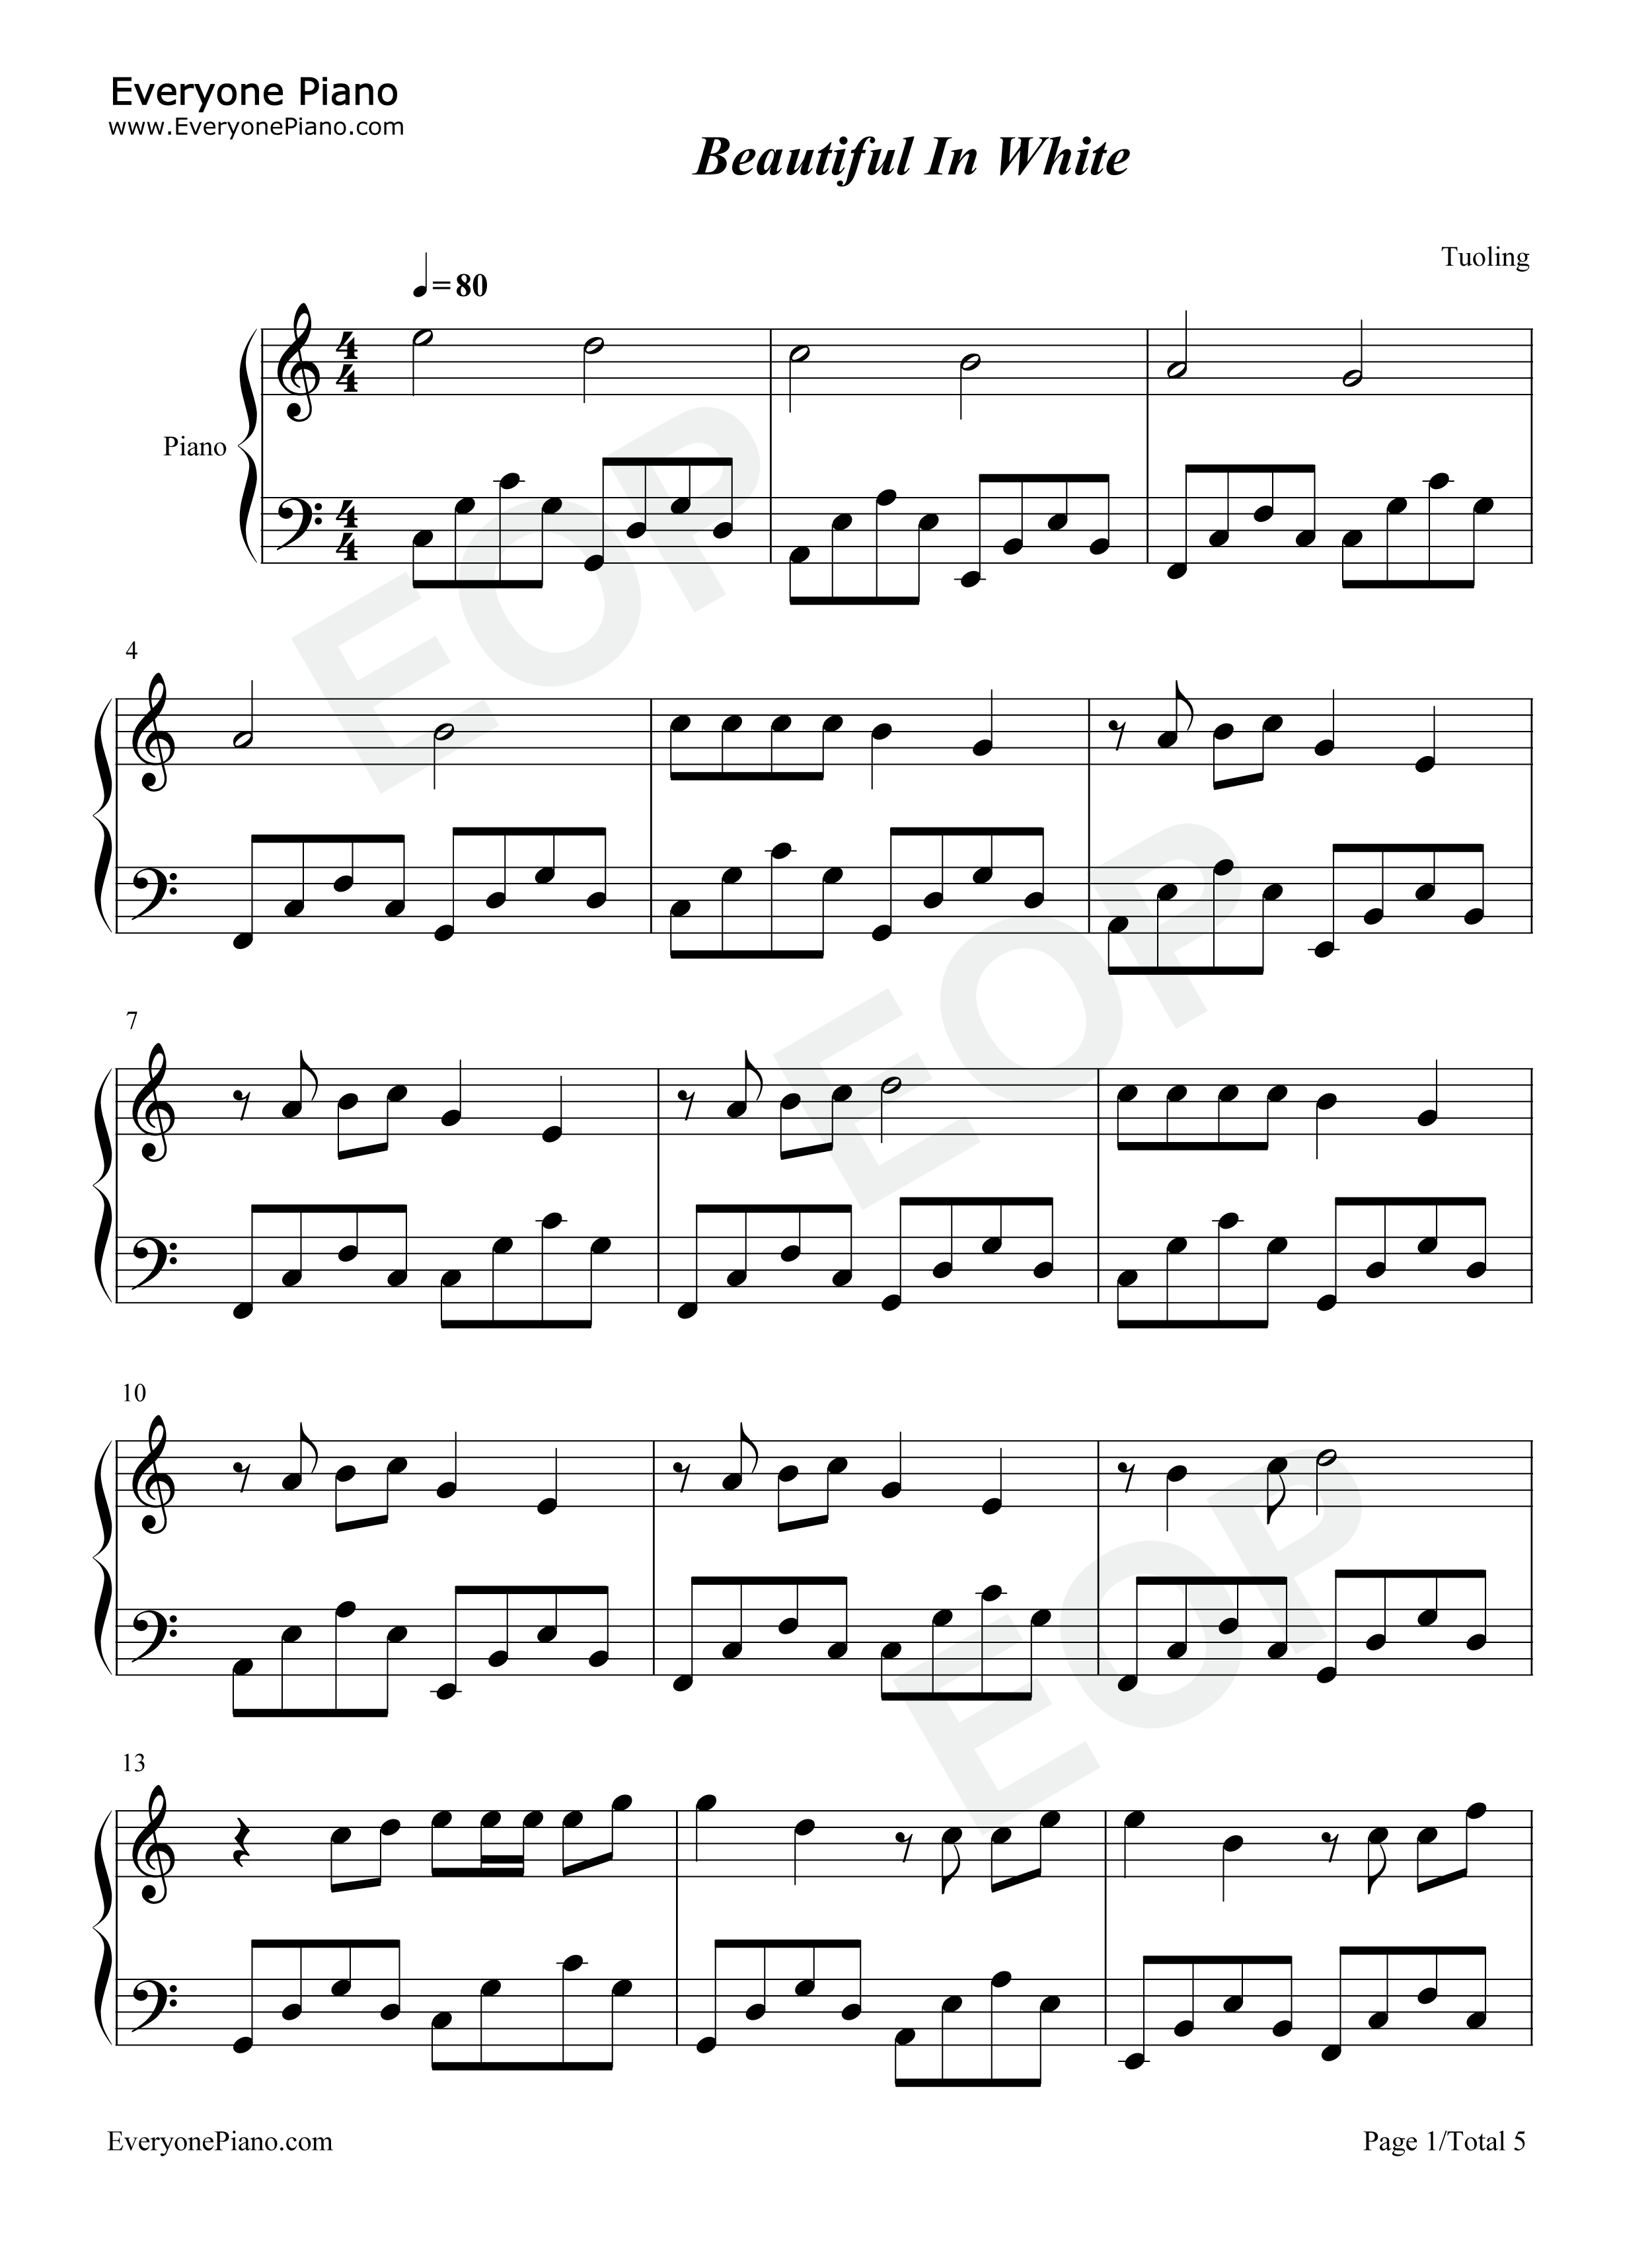 Beautiful in white westlife stave preview 1 free piano sheet listen now print sheet beautiful in white westlife stave preview 1 hexwebz Gallery